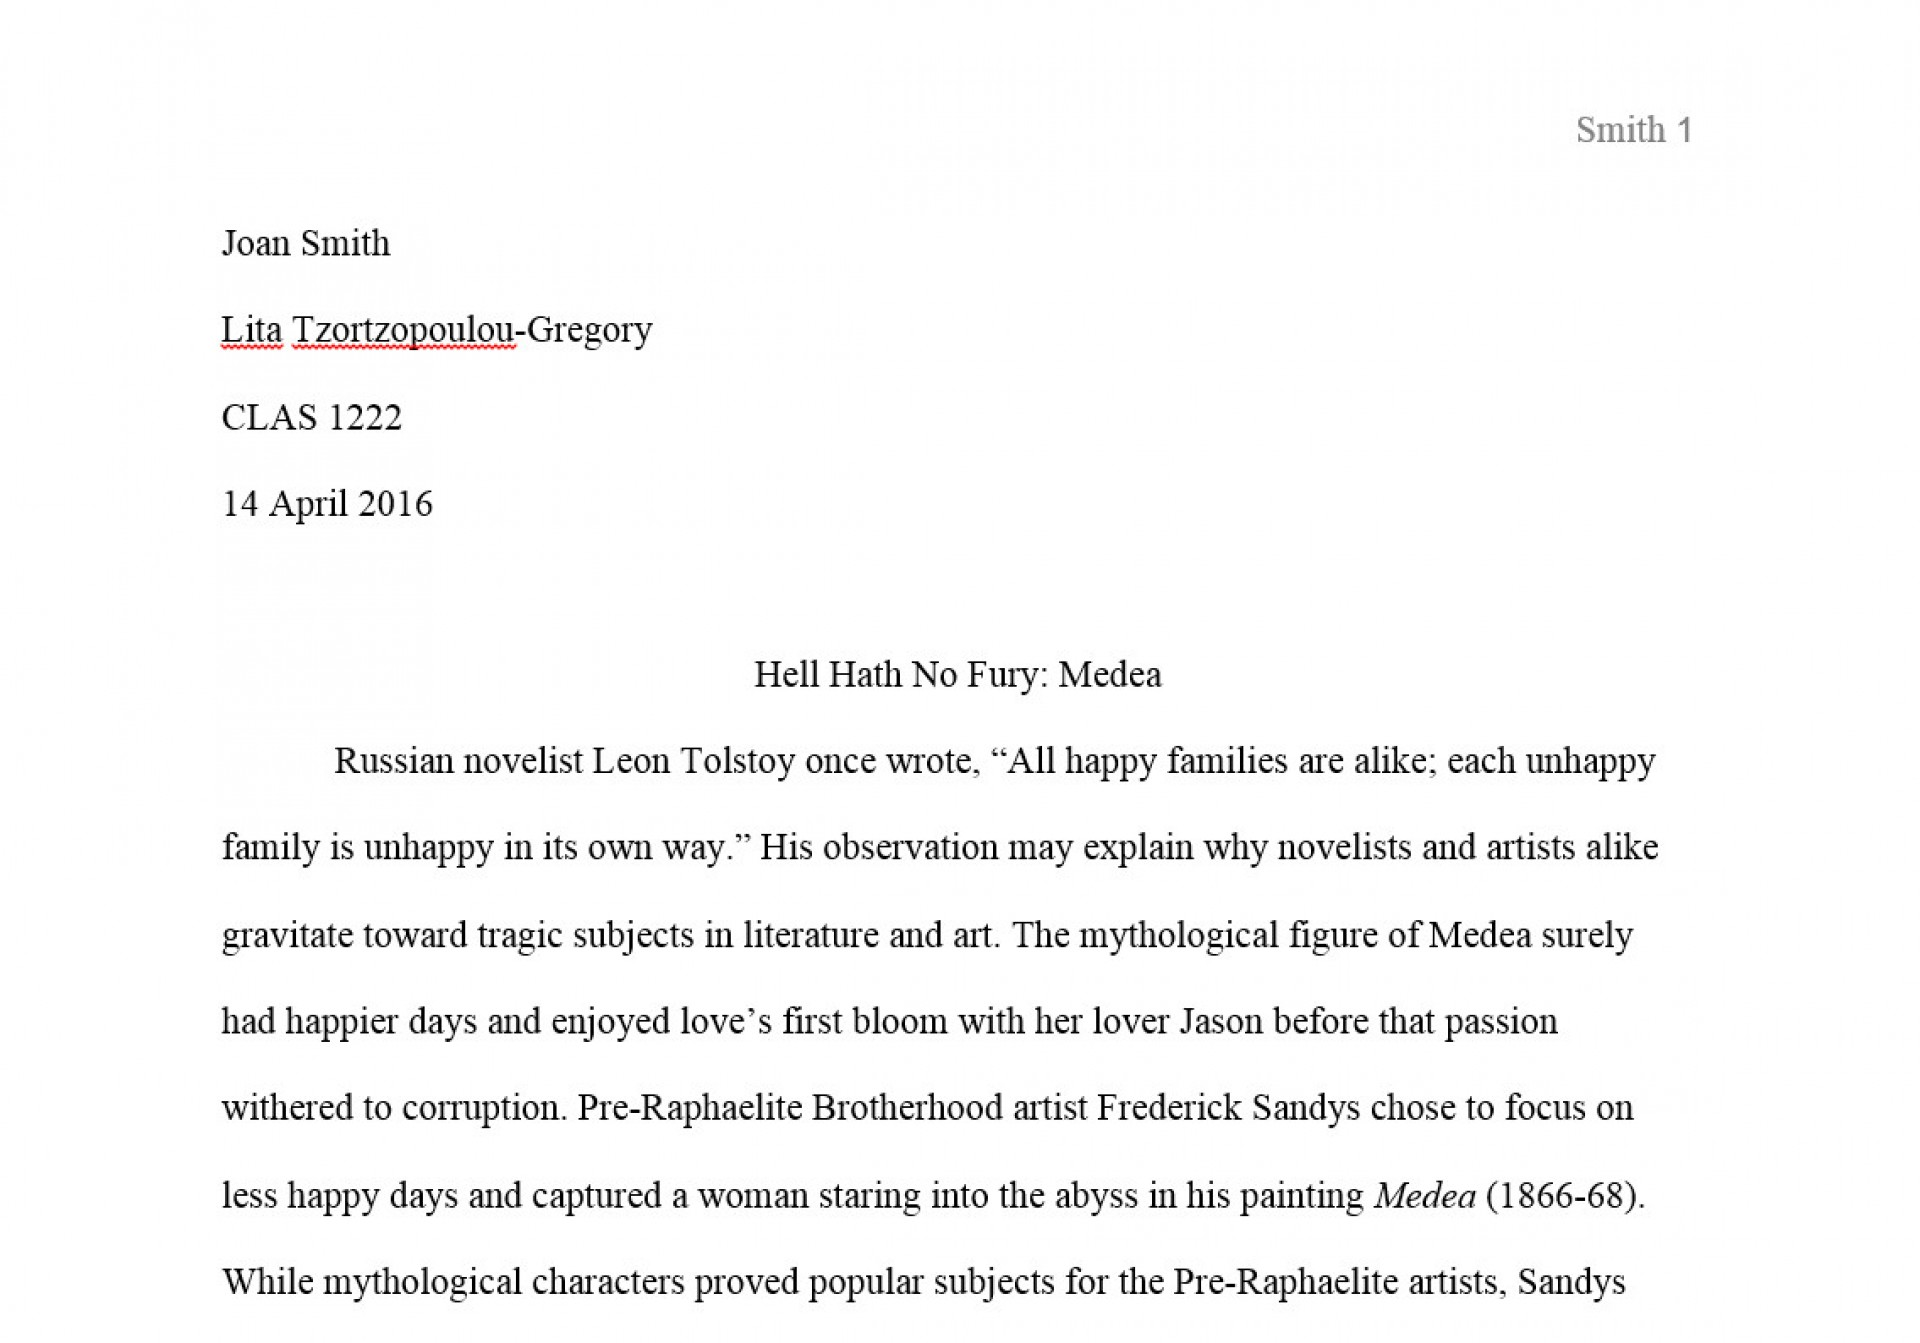 006 Samplefirstpagemla Research Paper College Mla Dreaded Format Example How To Write A 1920